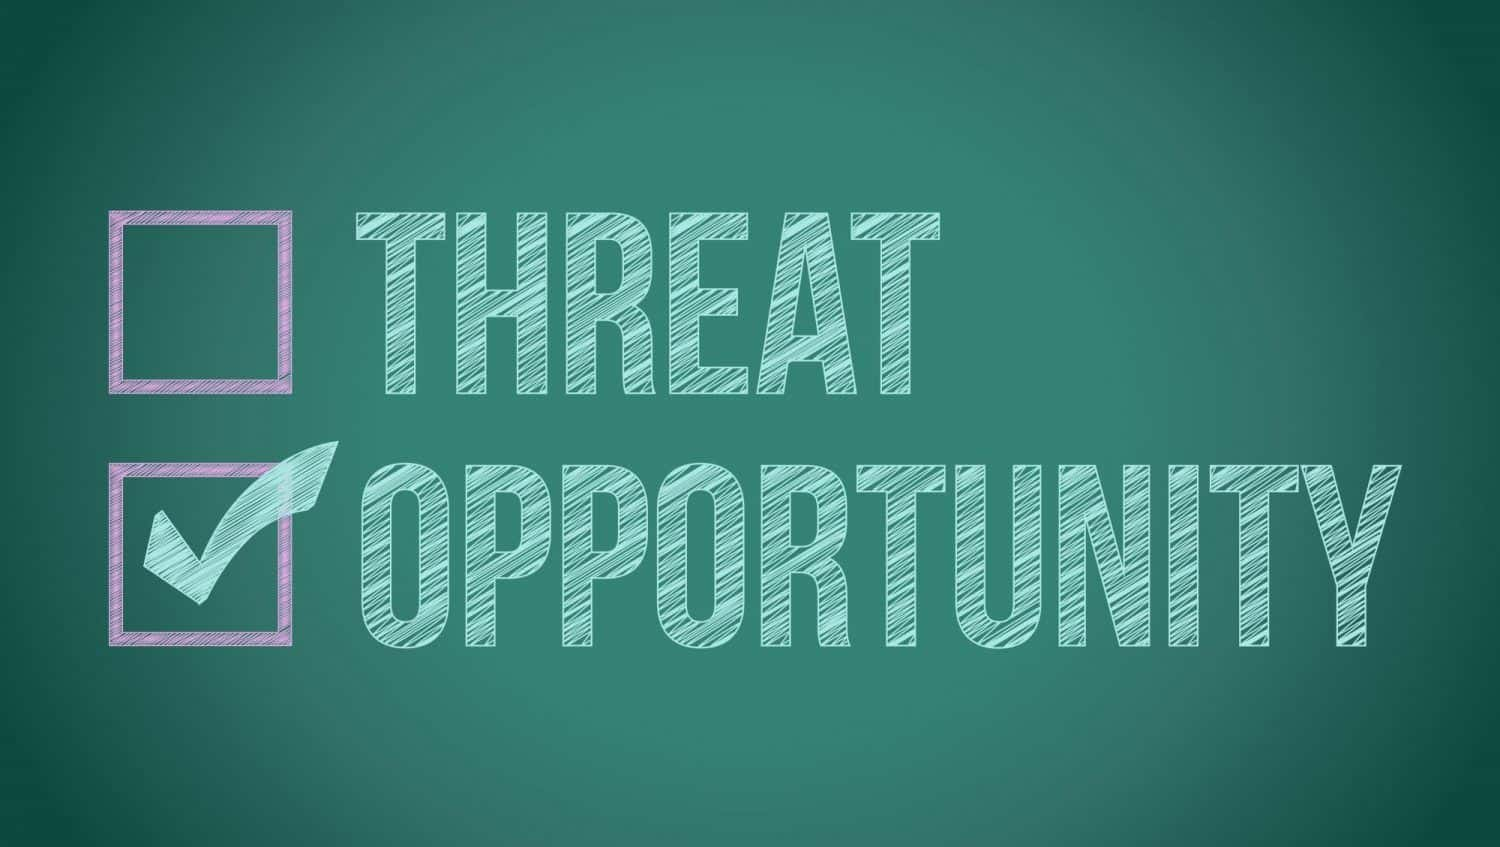 Threat or opportunity